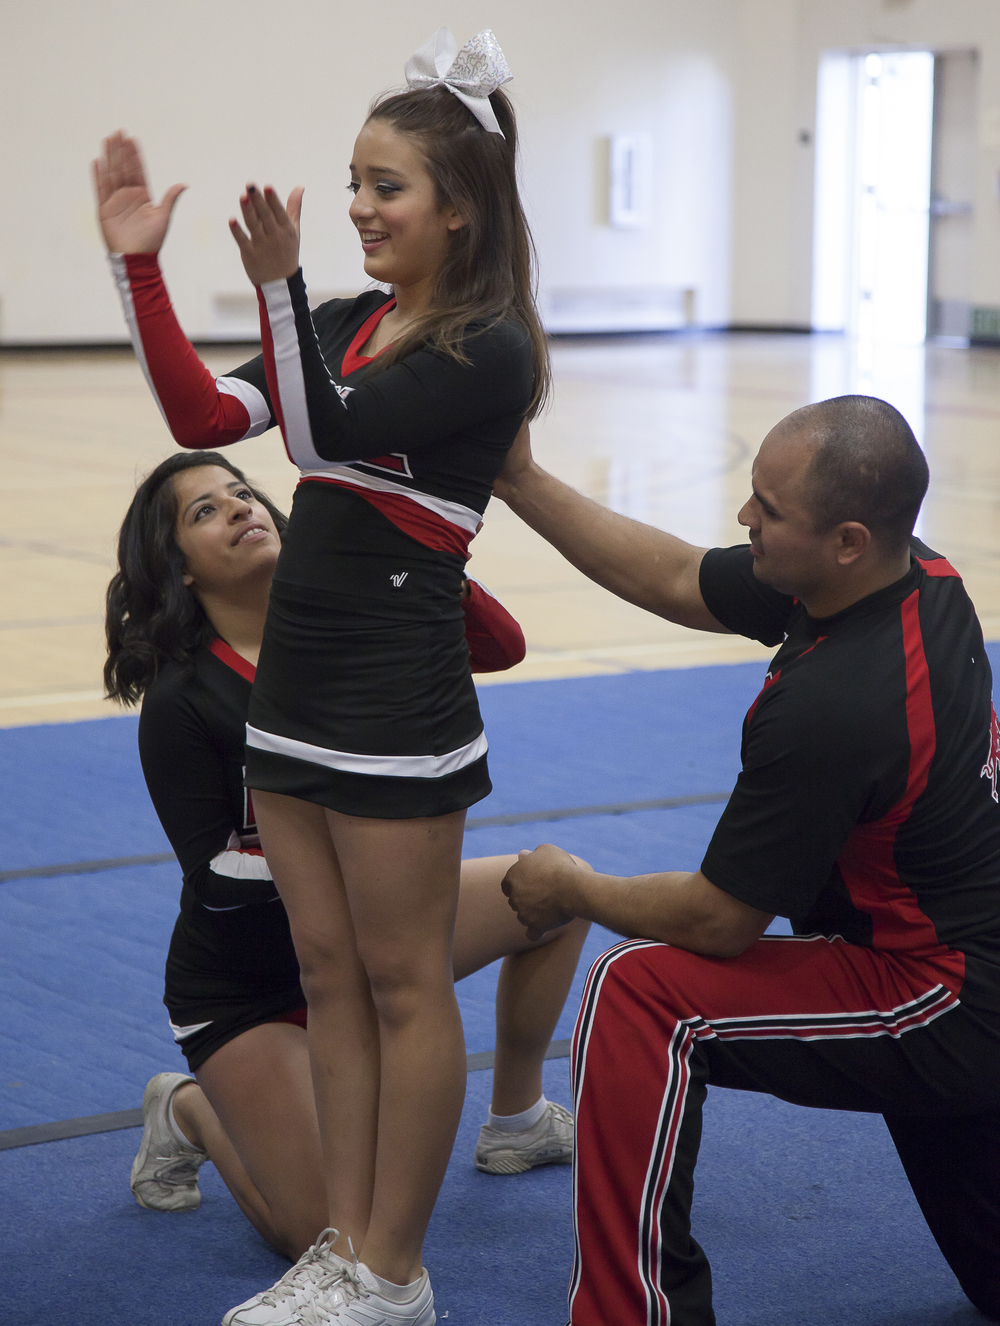 Dulce Rendon, left, and Julio Alanya, right, prepare to catch Vivian Herrera, center, during practice inside the North Gym on Sunday March 1, 2015. Woodland Hills, Calif.  Read the full story here